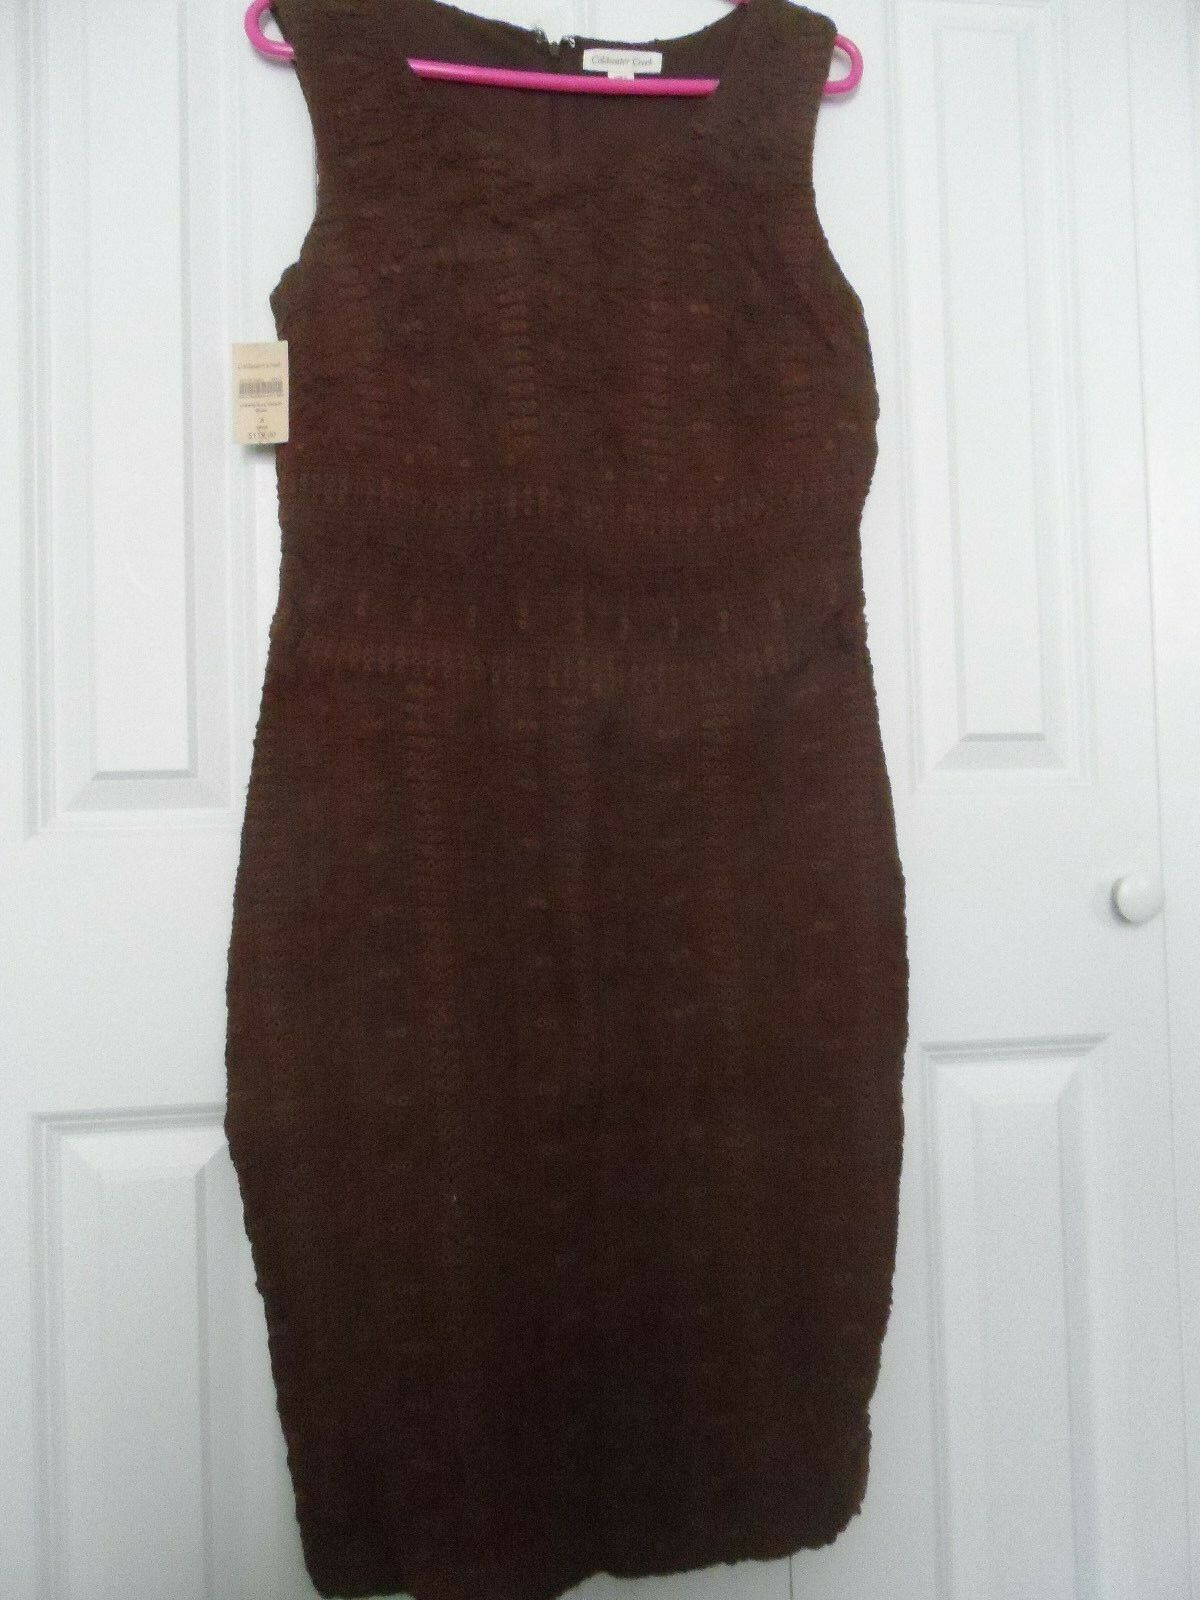 NEW Woman's Größe 8 Coldwater Creek Texturot braun Weave Lined Sleeveless Dress